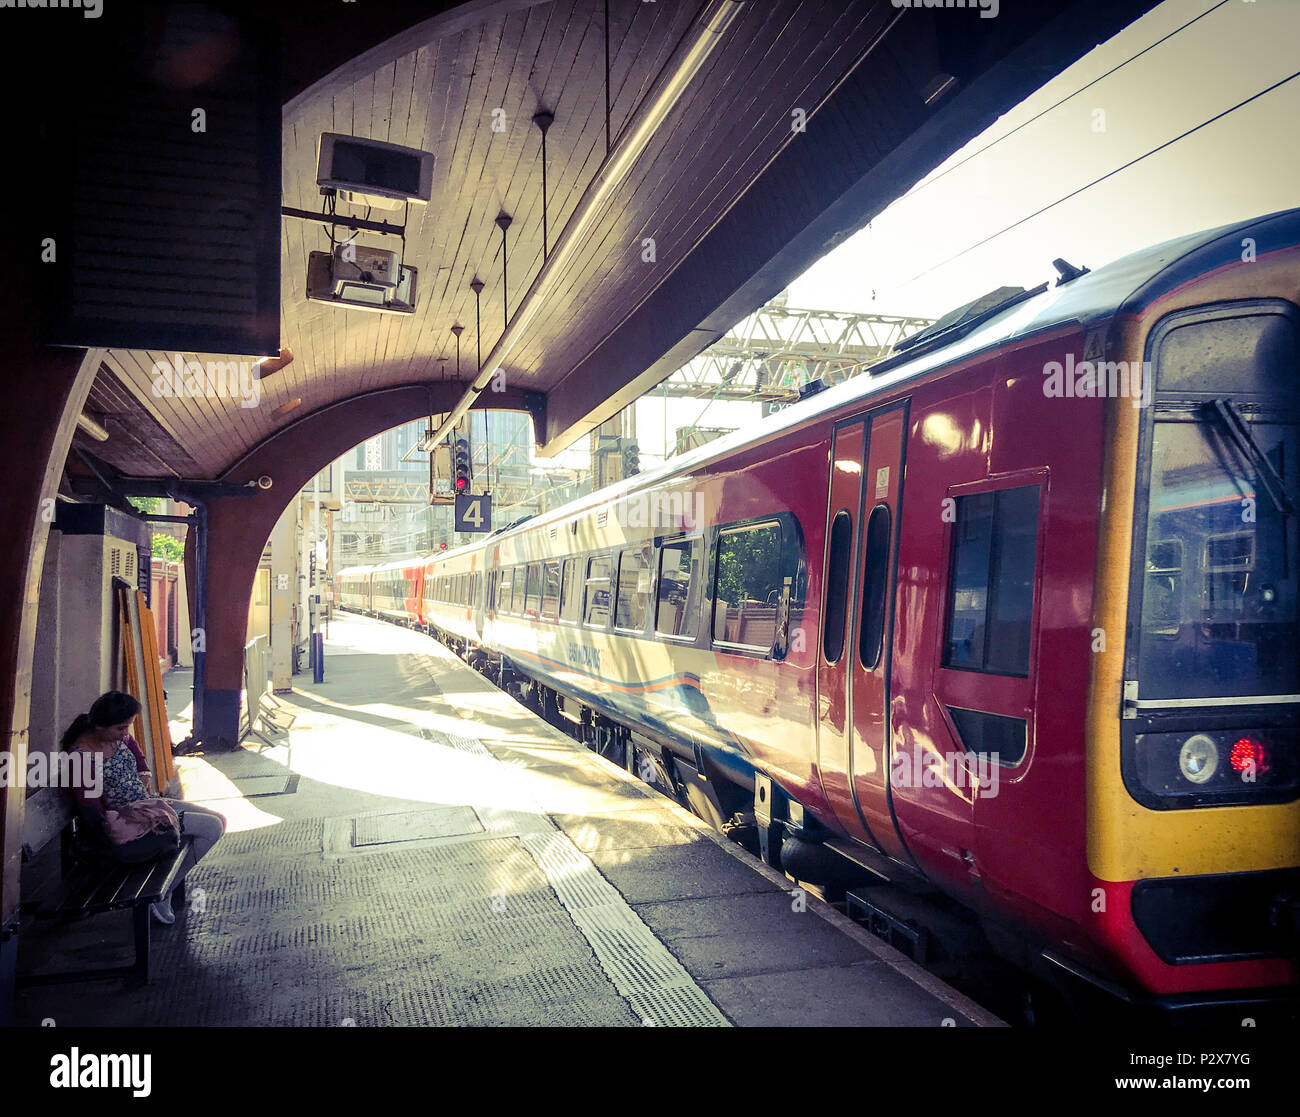 East Midlands Train leaving Manchester Oxford Road Railway Station, North West England, UK - Stock Image